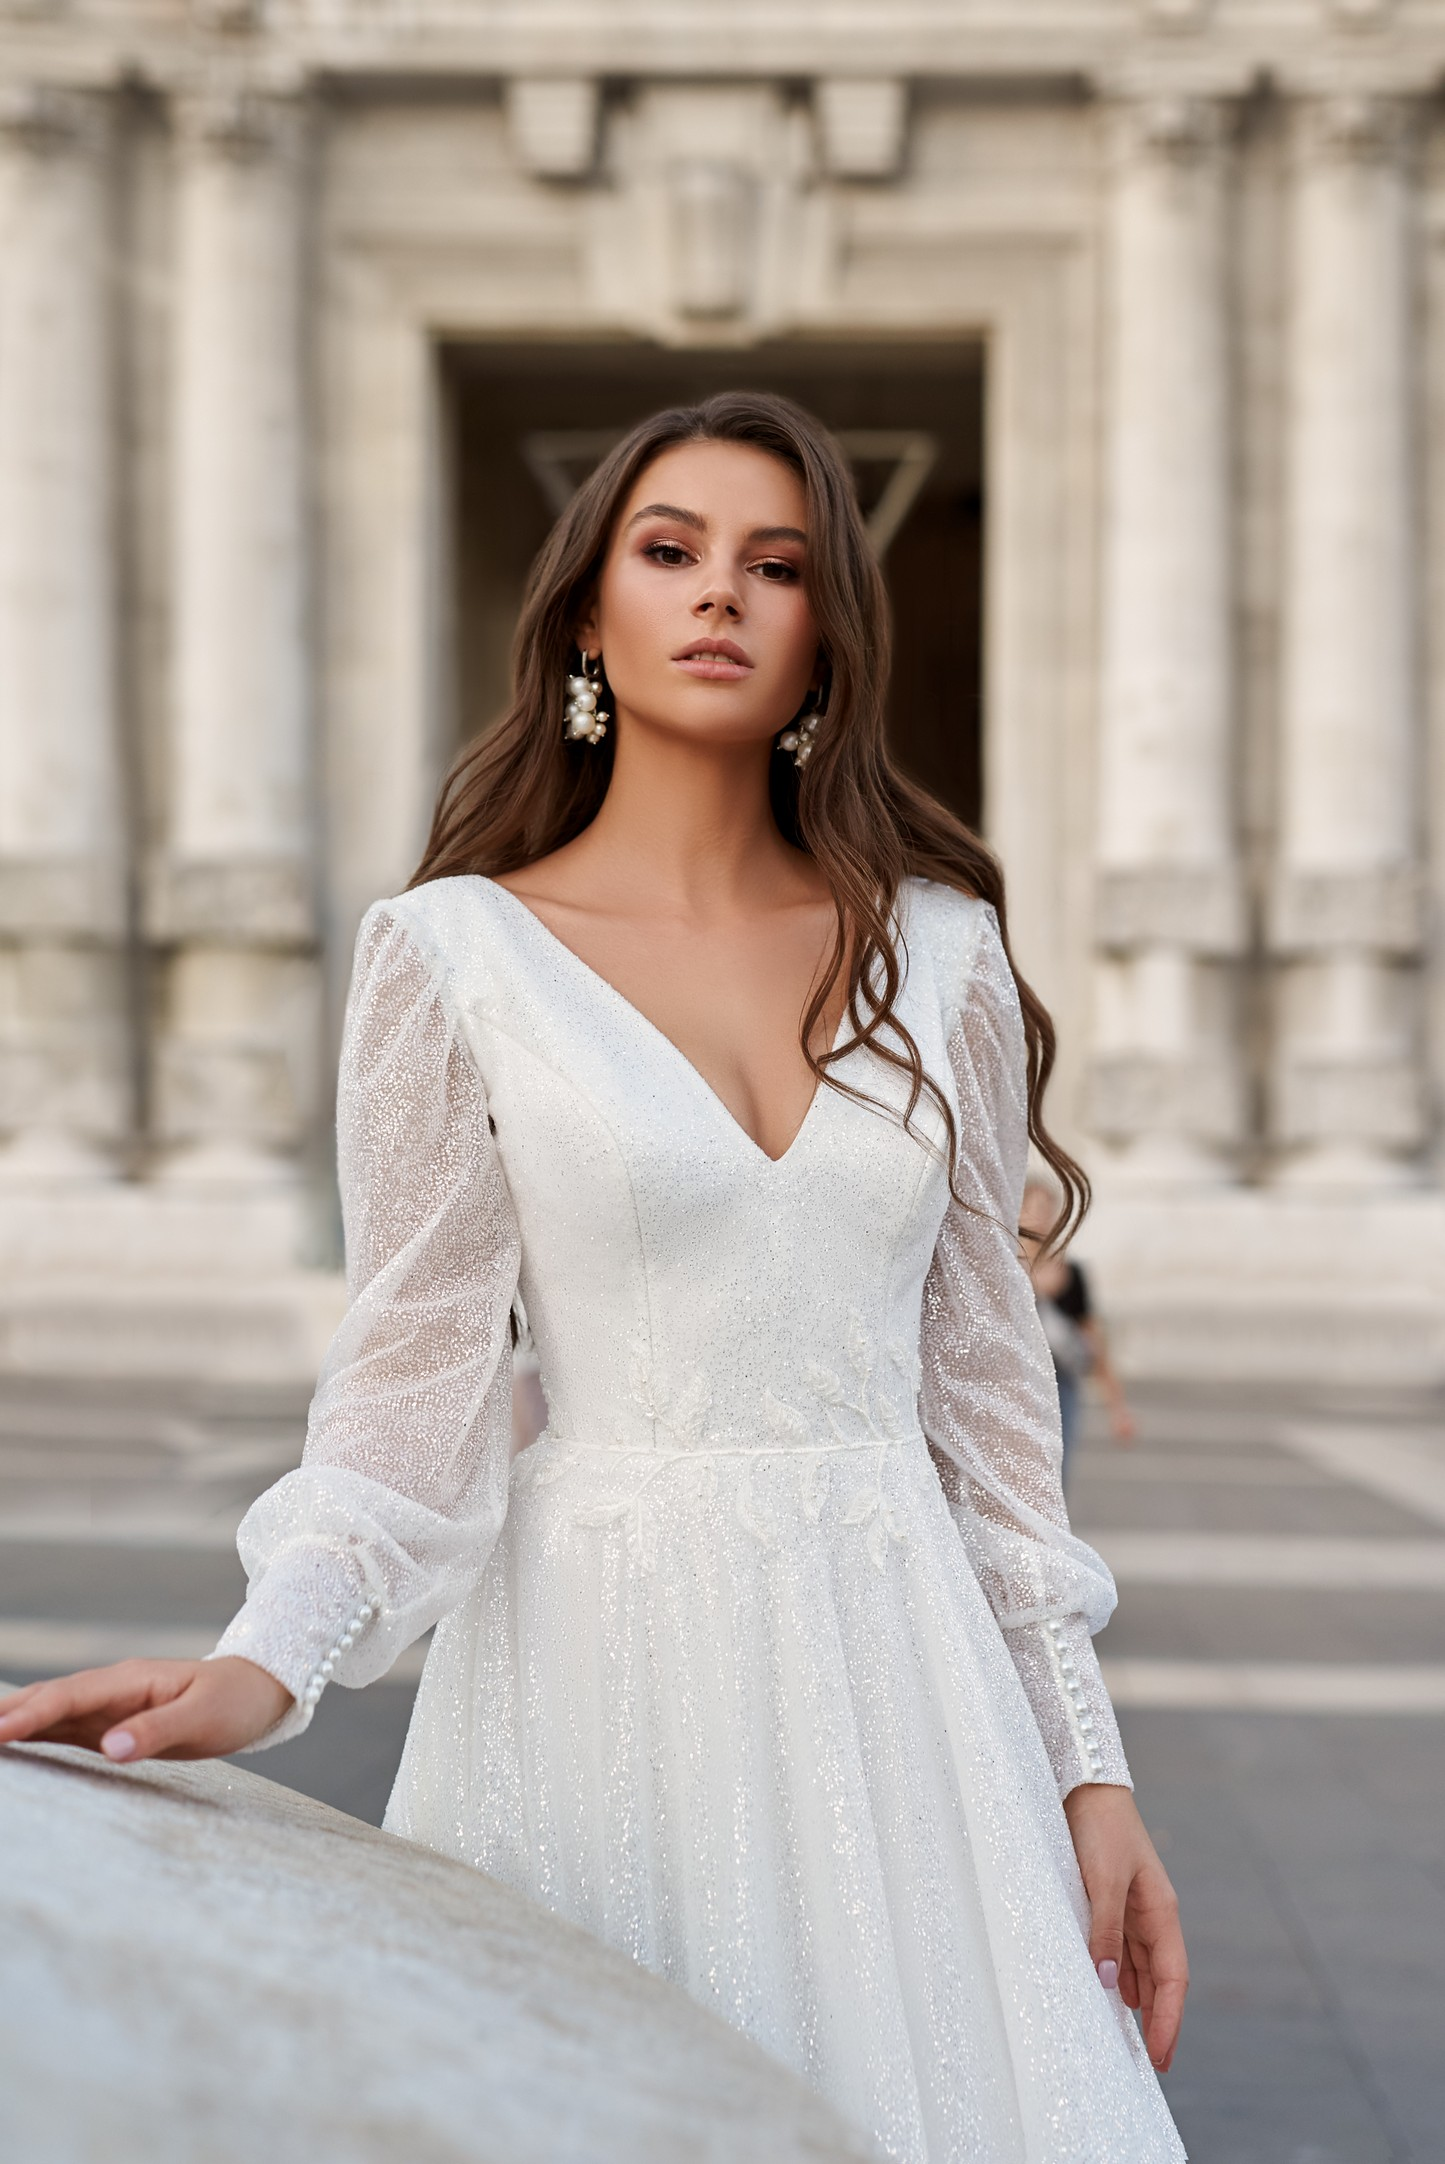 BOHO STYLE WEDDING DRESS WITH SHEER DETAILS